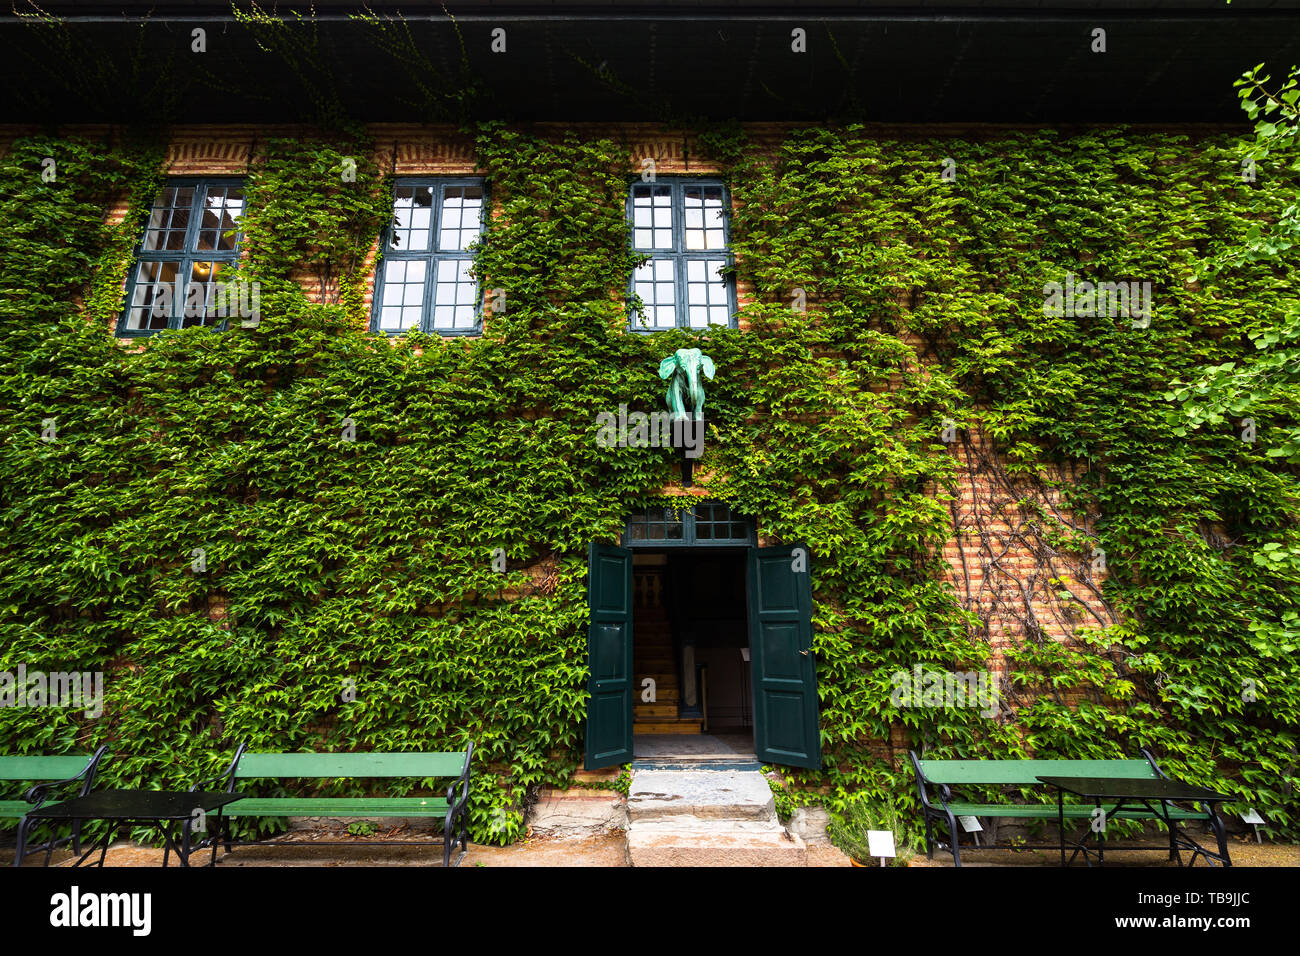 Scenic house facade covered by green ivy at Norsk Folkemuseum (Norwegian Museum of Cultural History), Olso, Norway - Stock Image